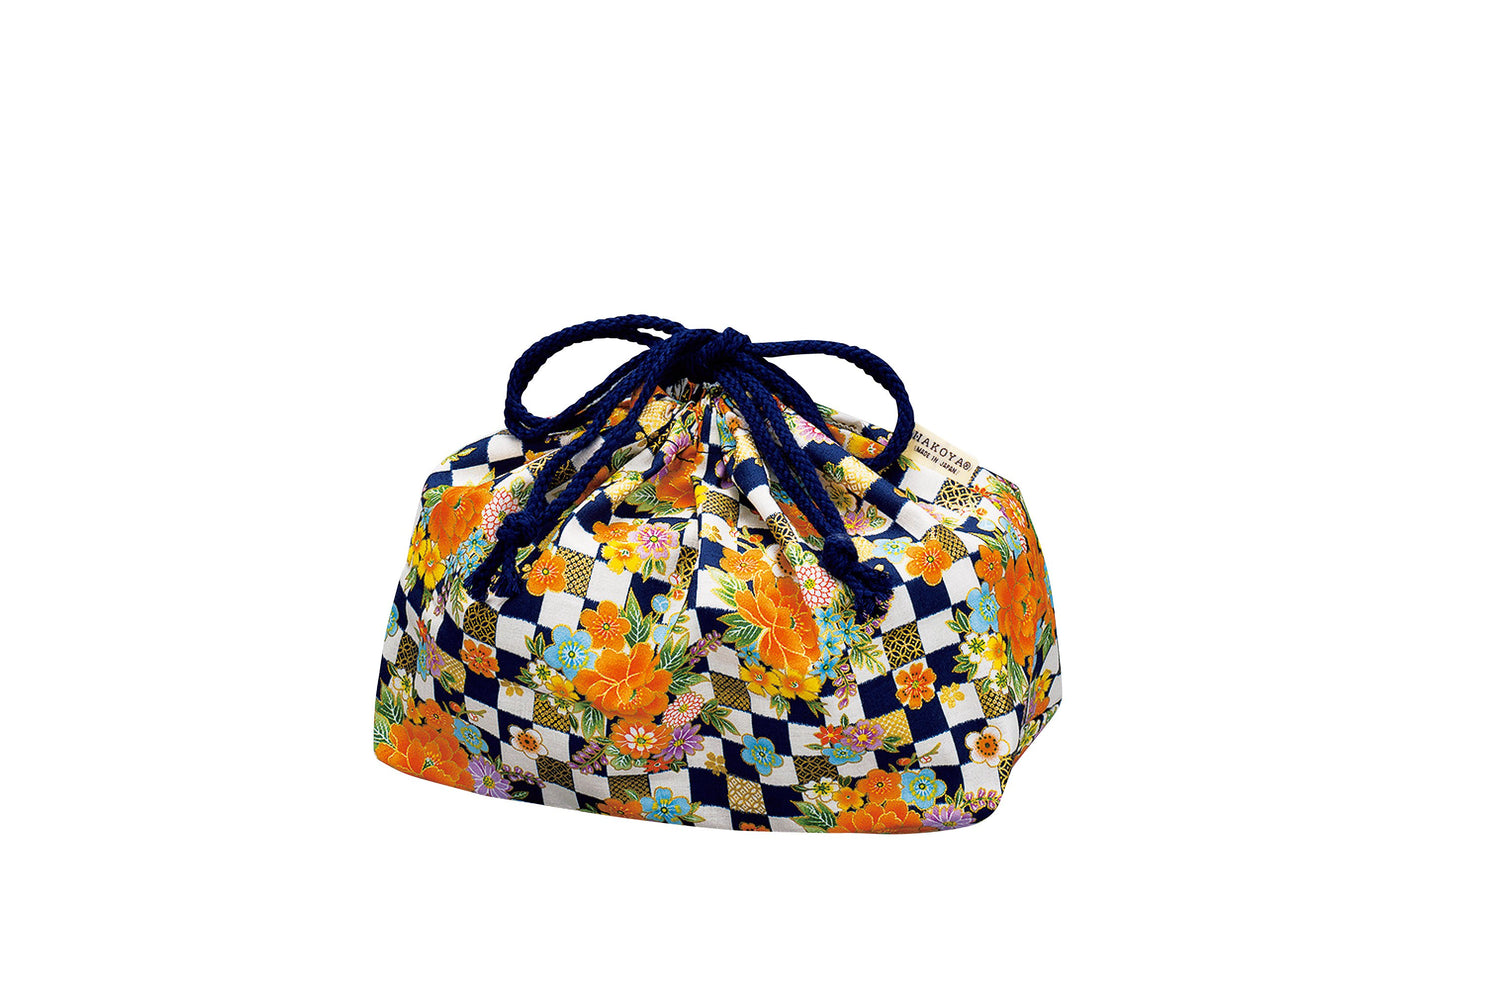 Ichimatsu Flower Drawstring Bag | Navy by Hakoya - Bento&co Japanese Bento Lunch Boxes and Kitchenware Specialists